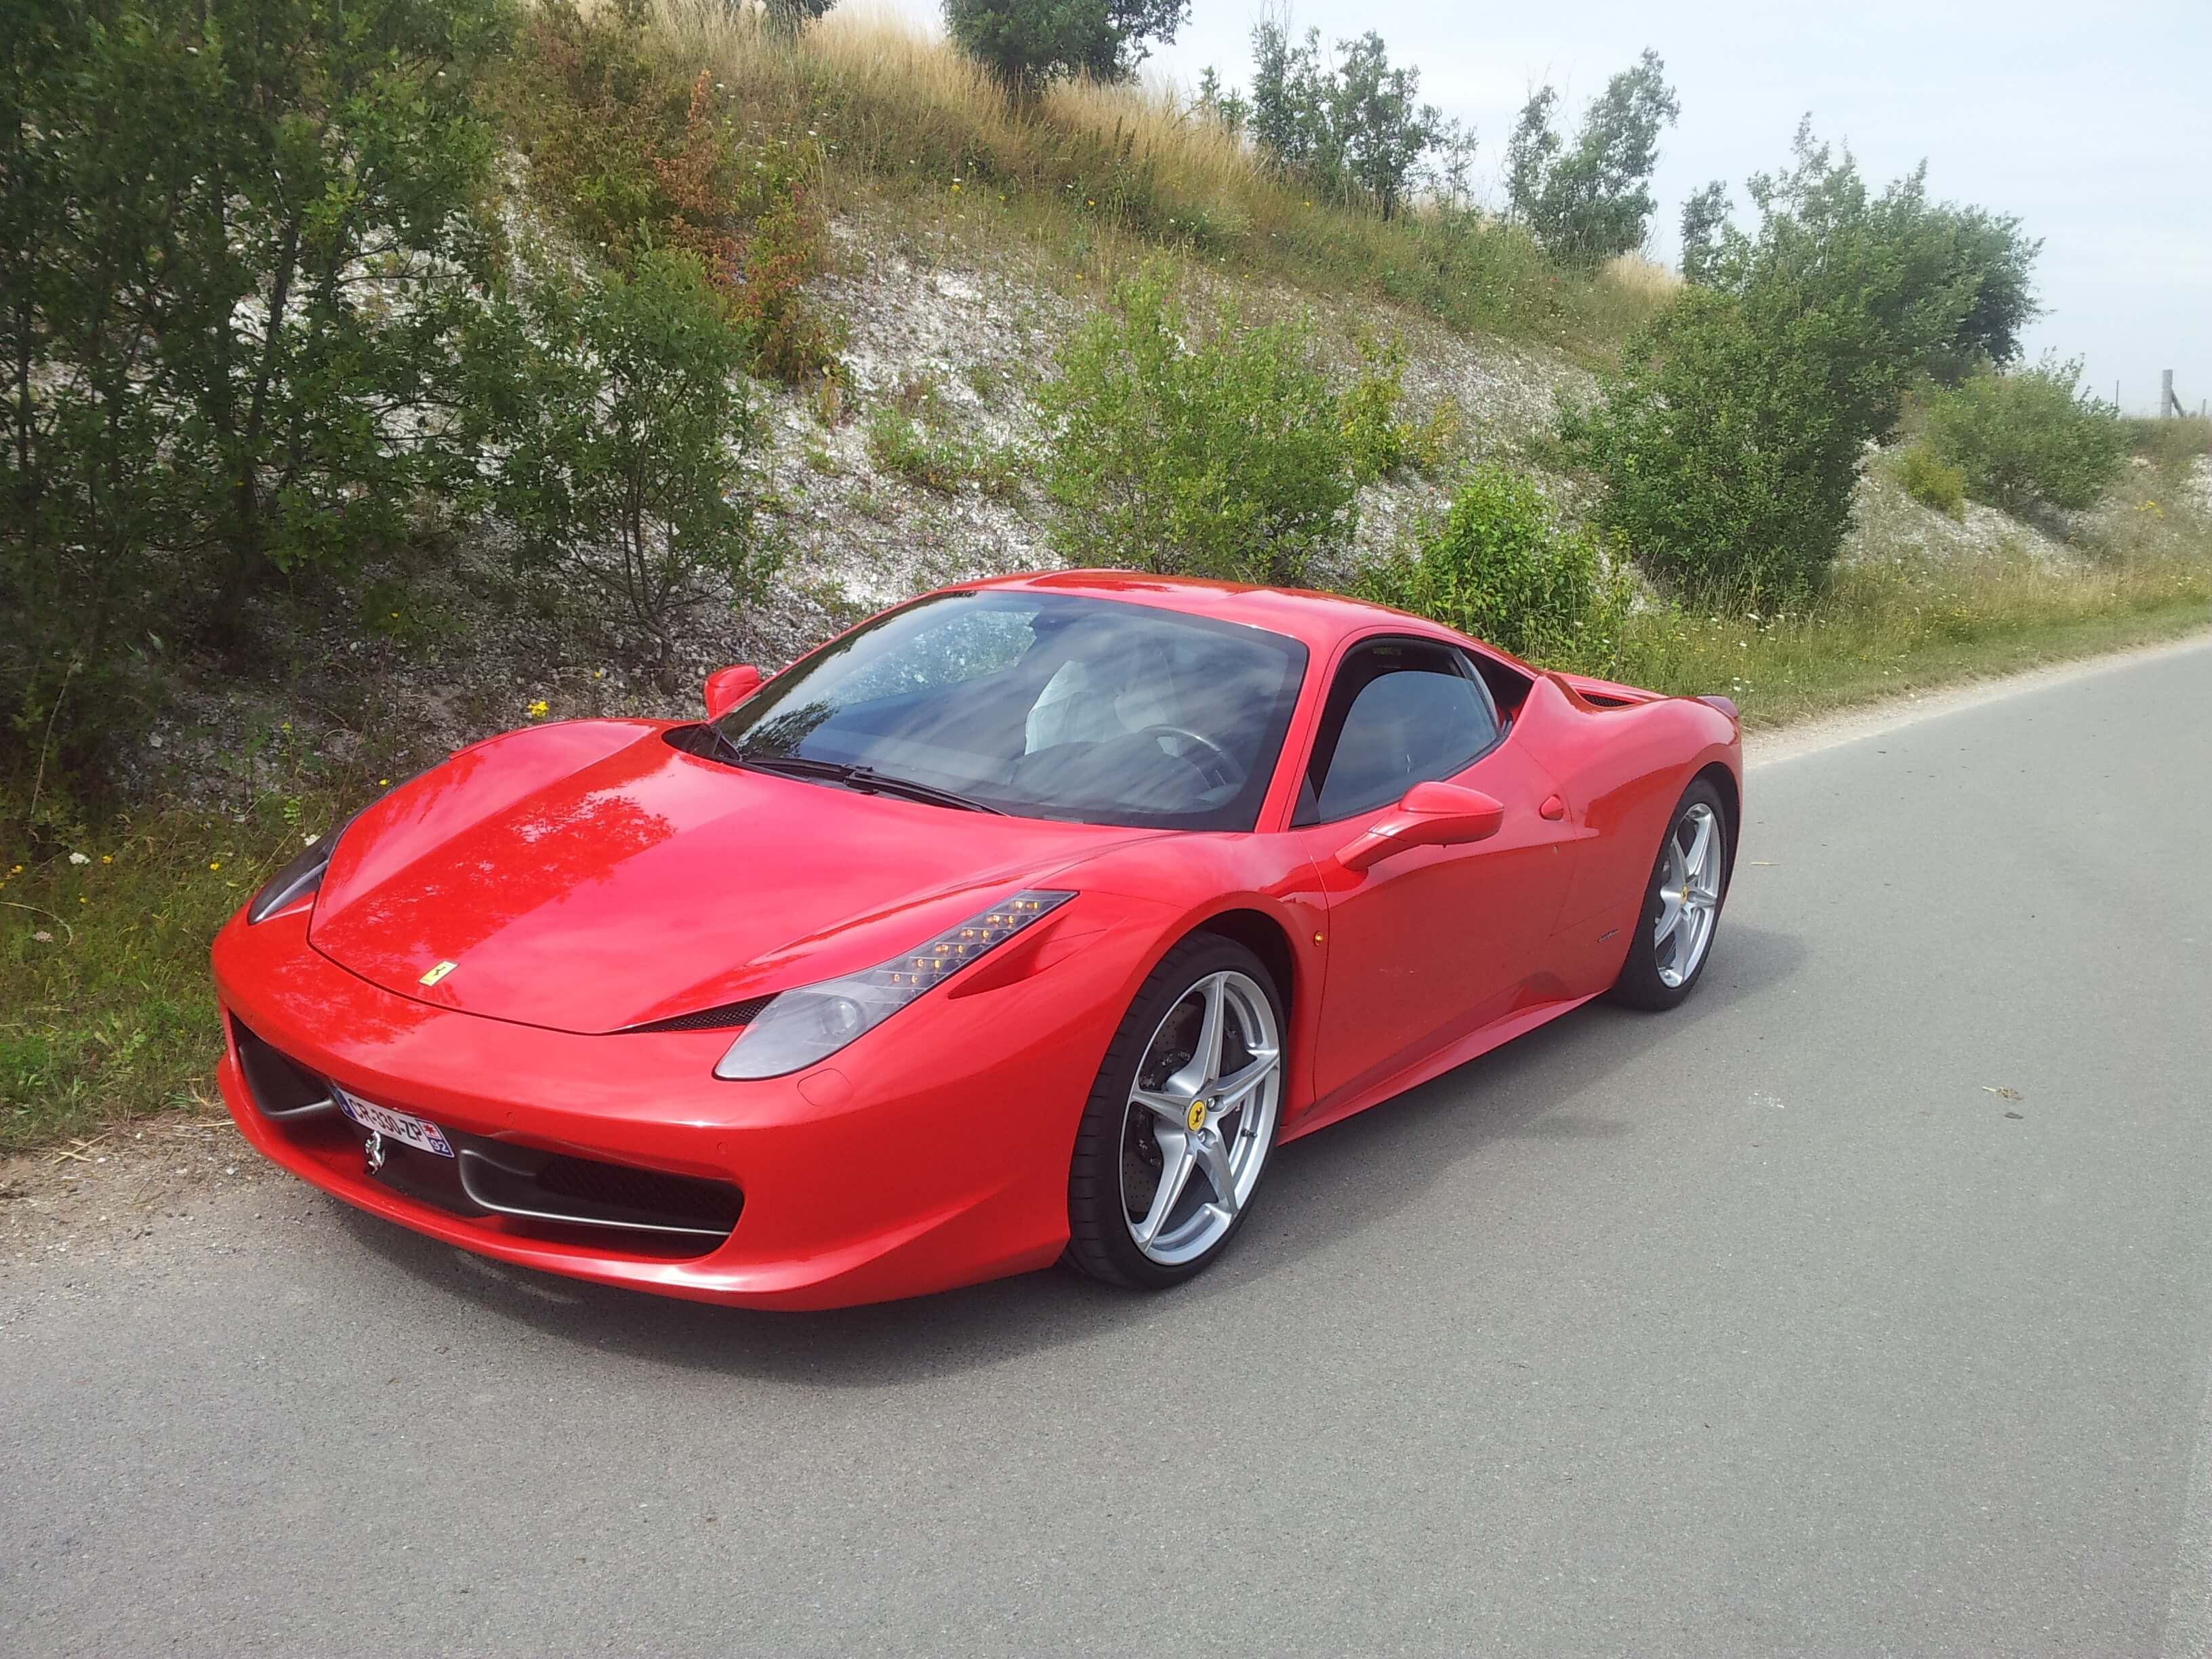 voiture occasion ferrari 458 italia labellis e vendre calais ref 571. Black Bedroom Furniture Sets. Home Design Ideas